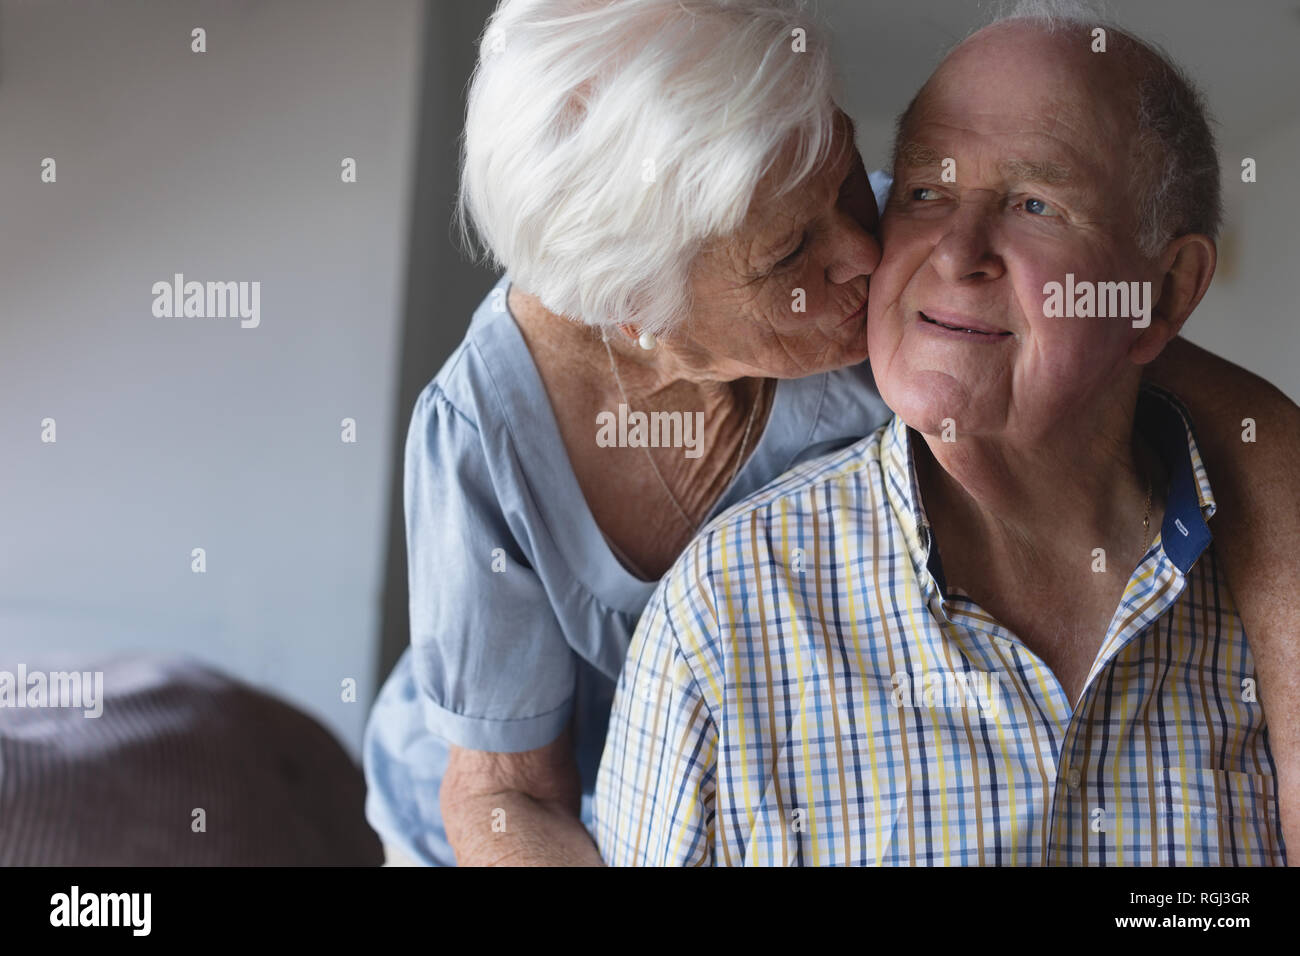 Front view of an active senior woman kissing senior man on the cheek at home - Stock Image